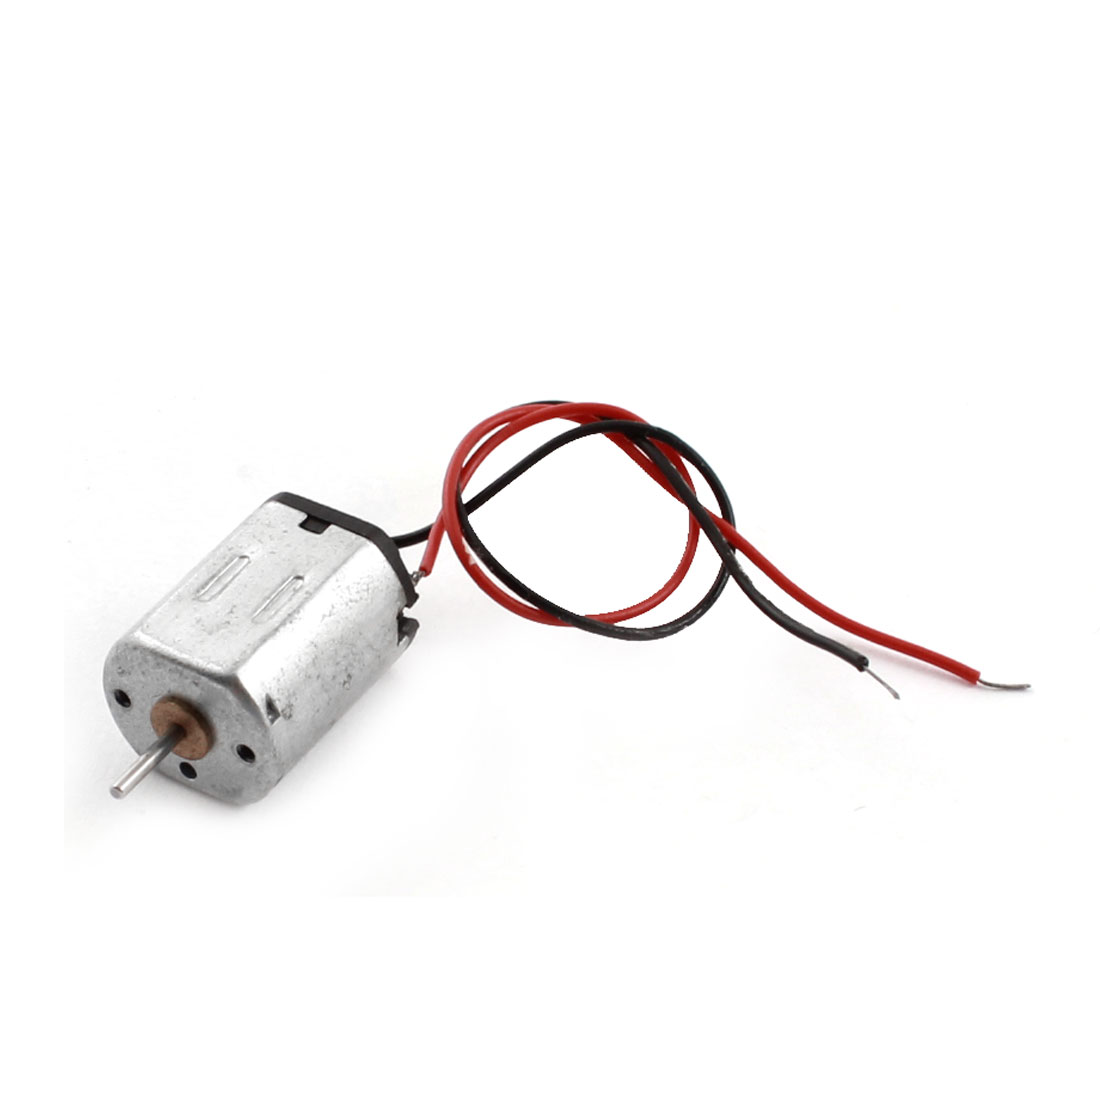 DC 3V 8500RPM High Torque Cylinderical Miniature Electric Motor Two Wire Leads